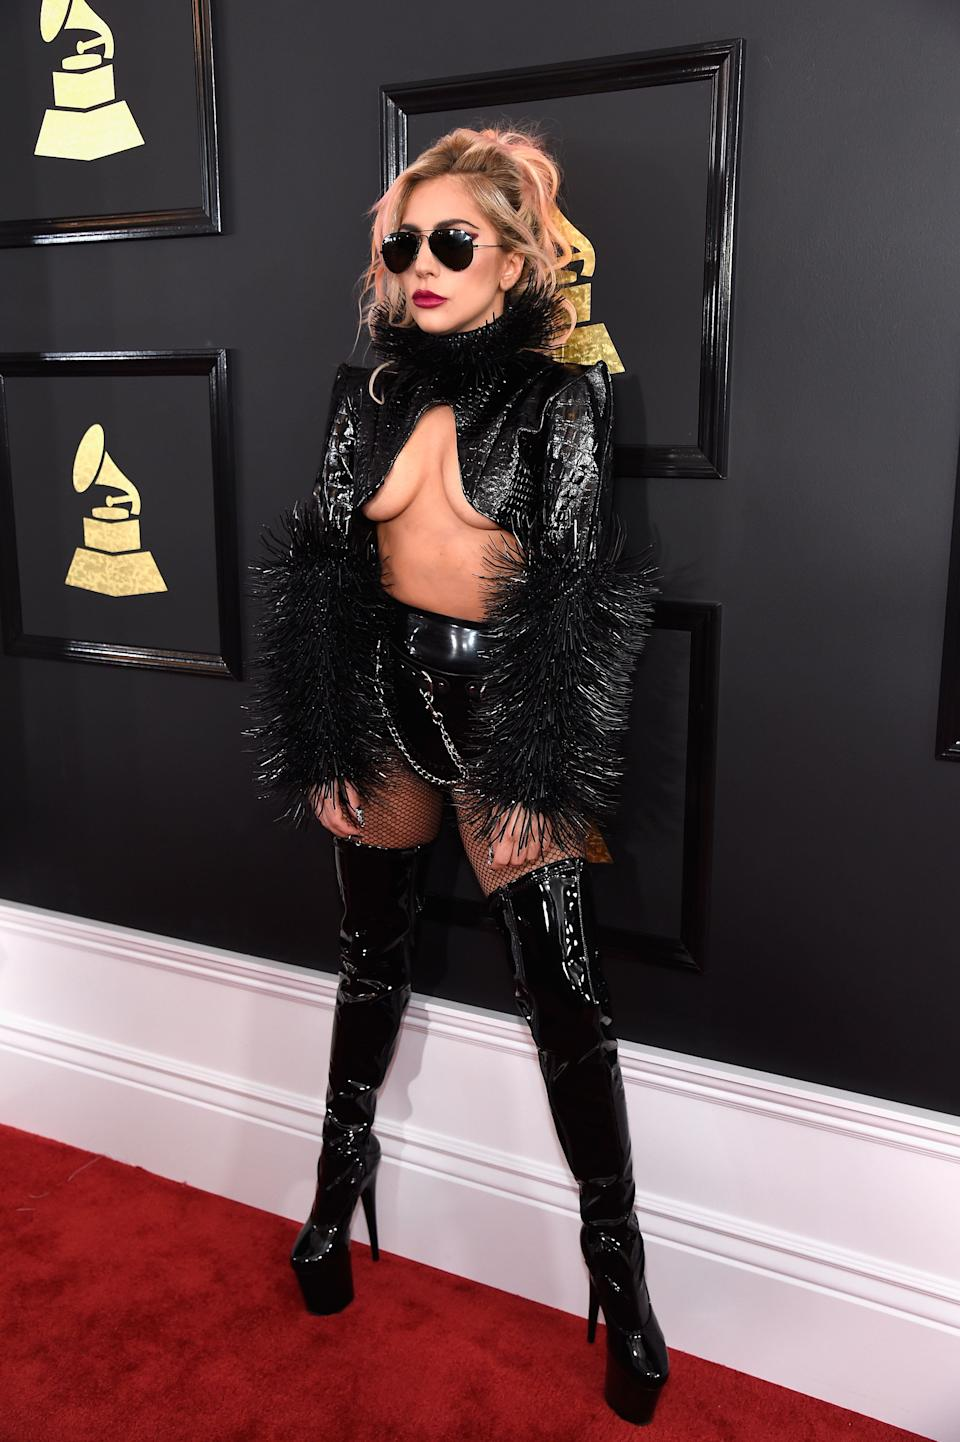 Gaga wears a bold ensemble by Alex Ulichny on the red carpet at the 2017 Grammy Awards.